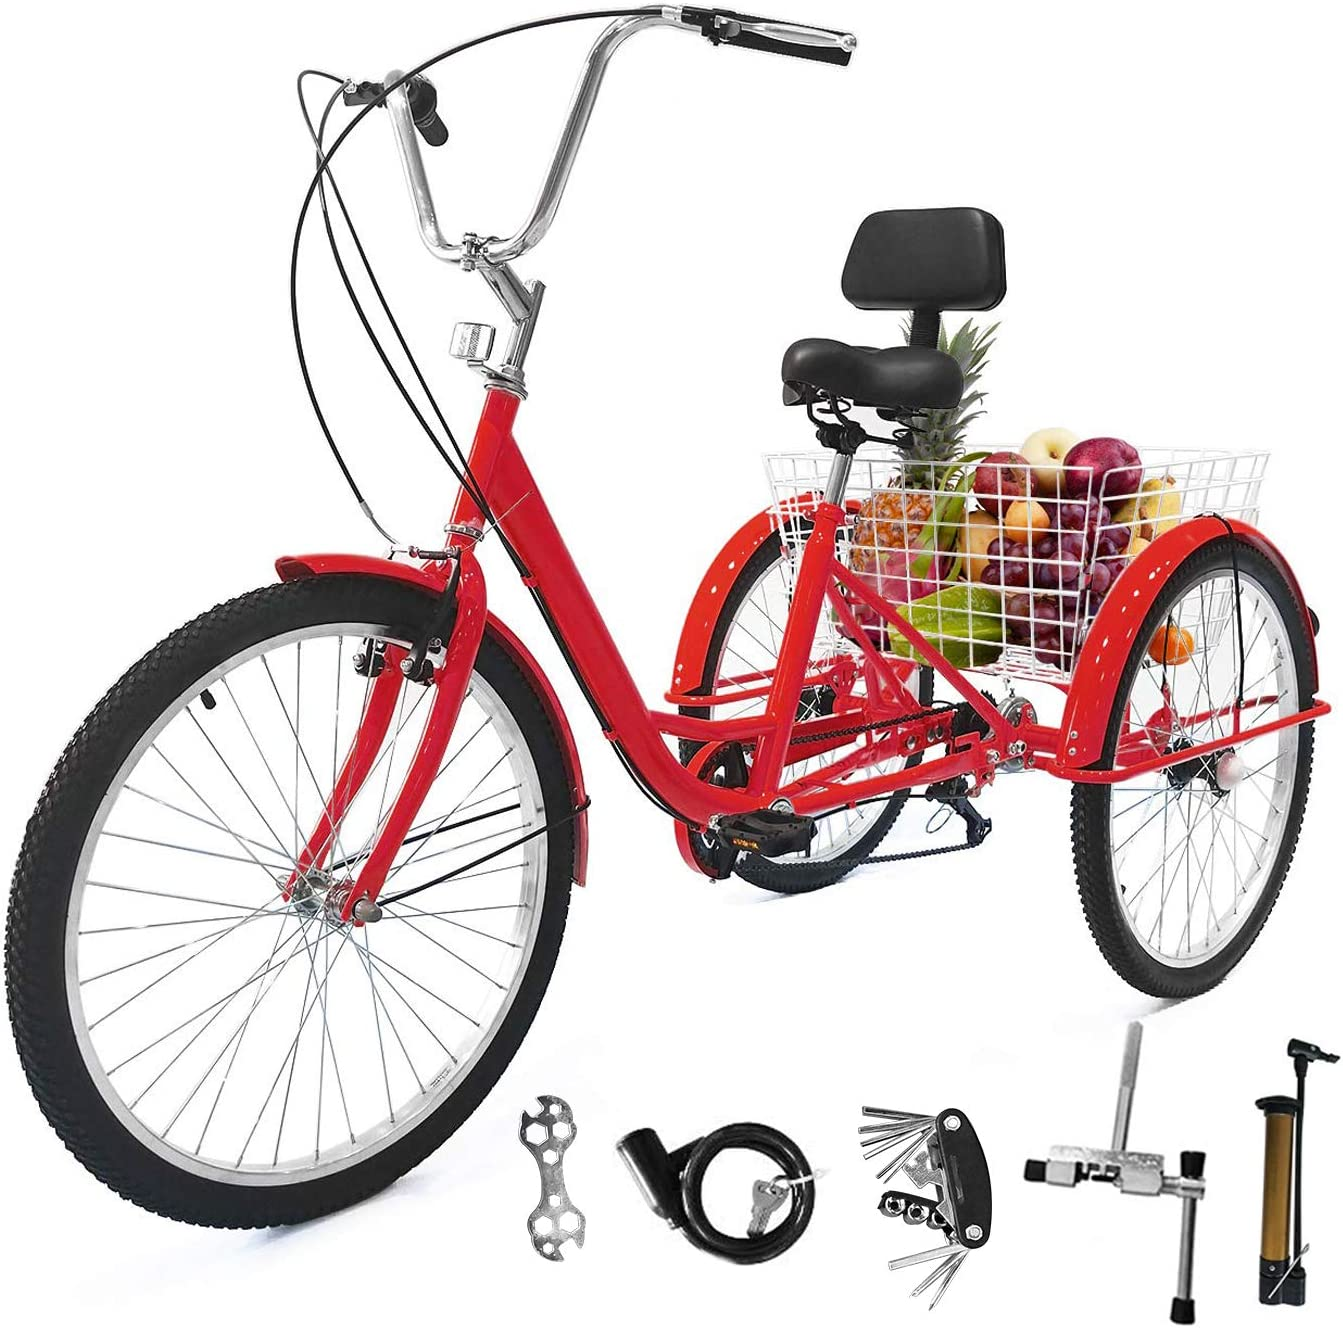 7Speed,24 inch Cool Red EOSAGA 7 Speed Adult Tricycle 24//26 in Trike Cruise Bike 3 Wheeled Bicycle for Women Men Shopping Recreation w//Large Basket,Multi-Function Screwdriver,Wrench,Lock,Pump